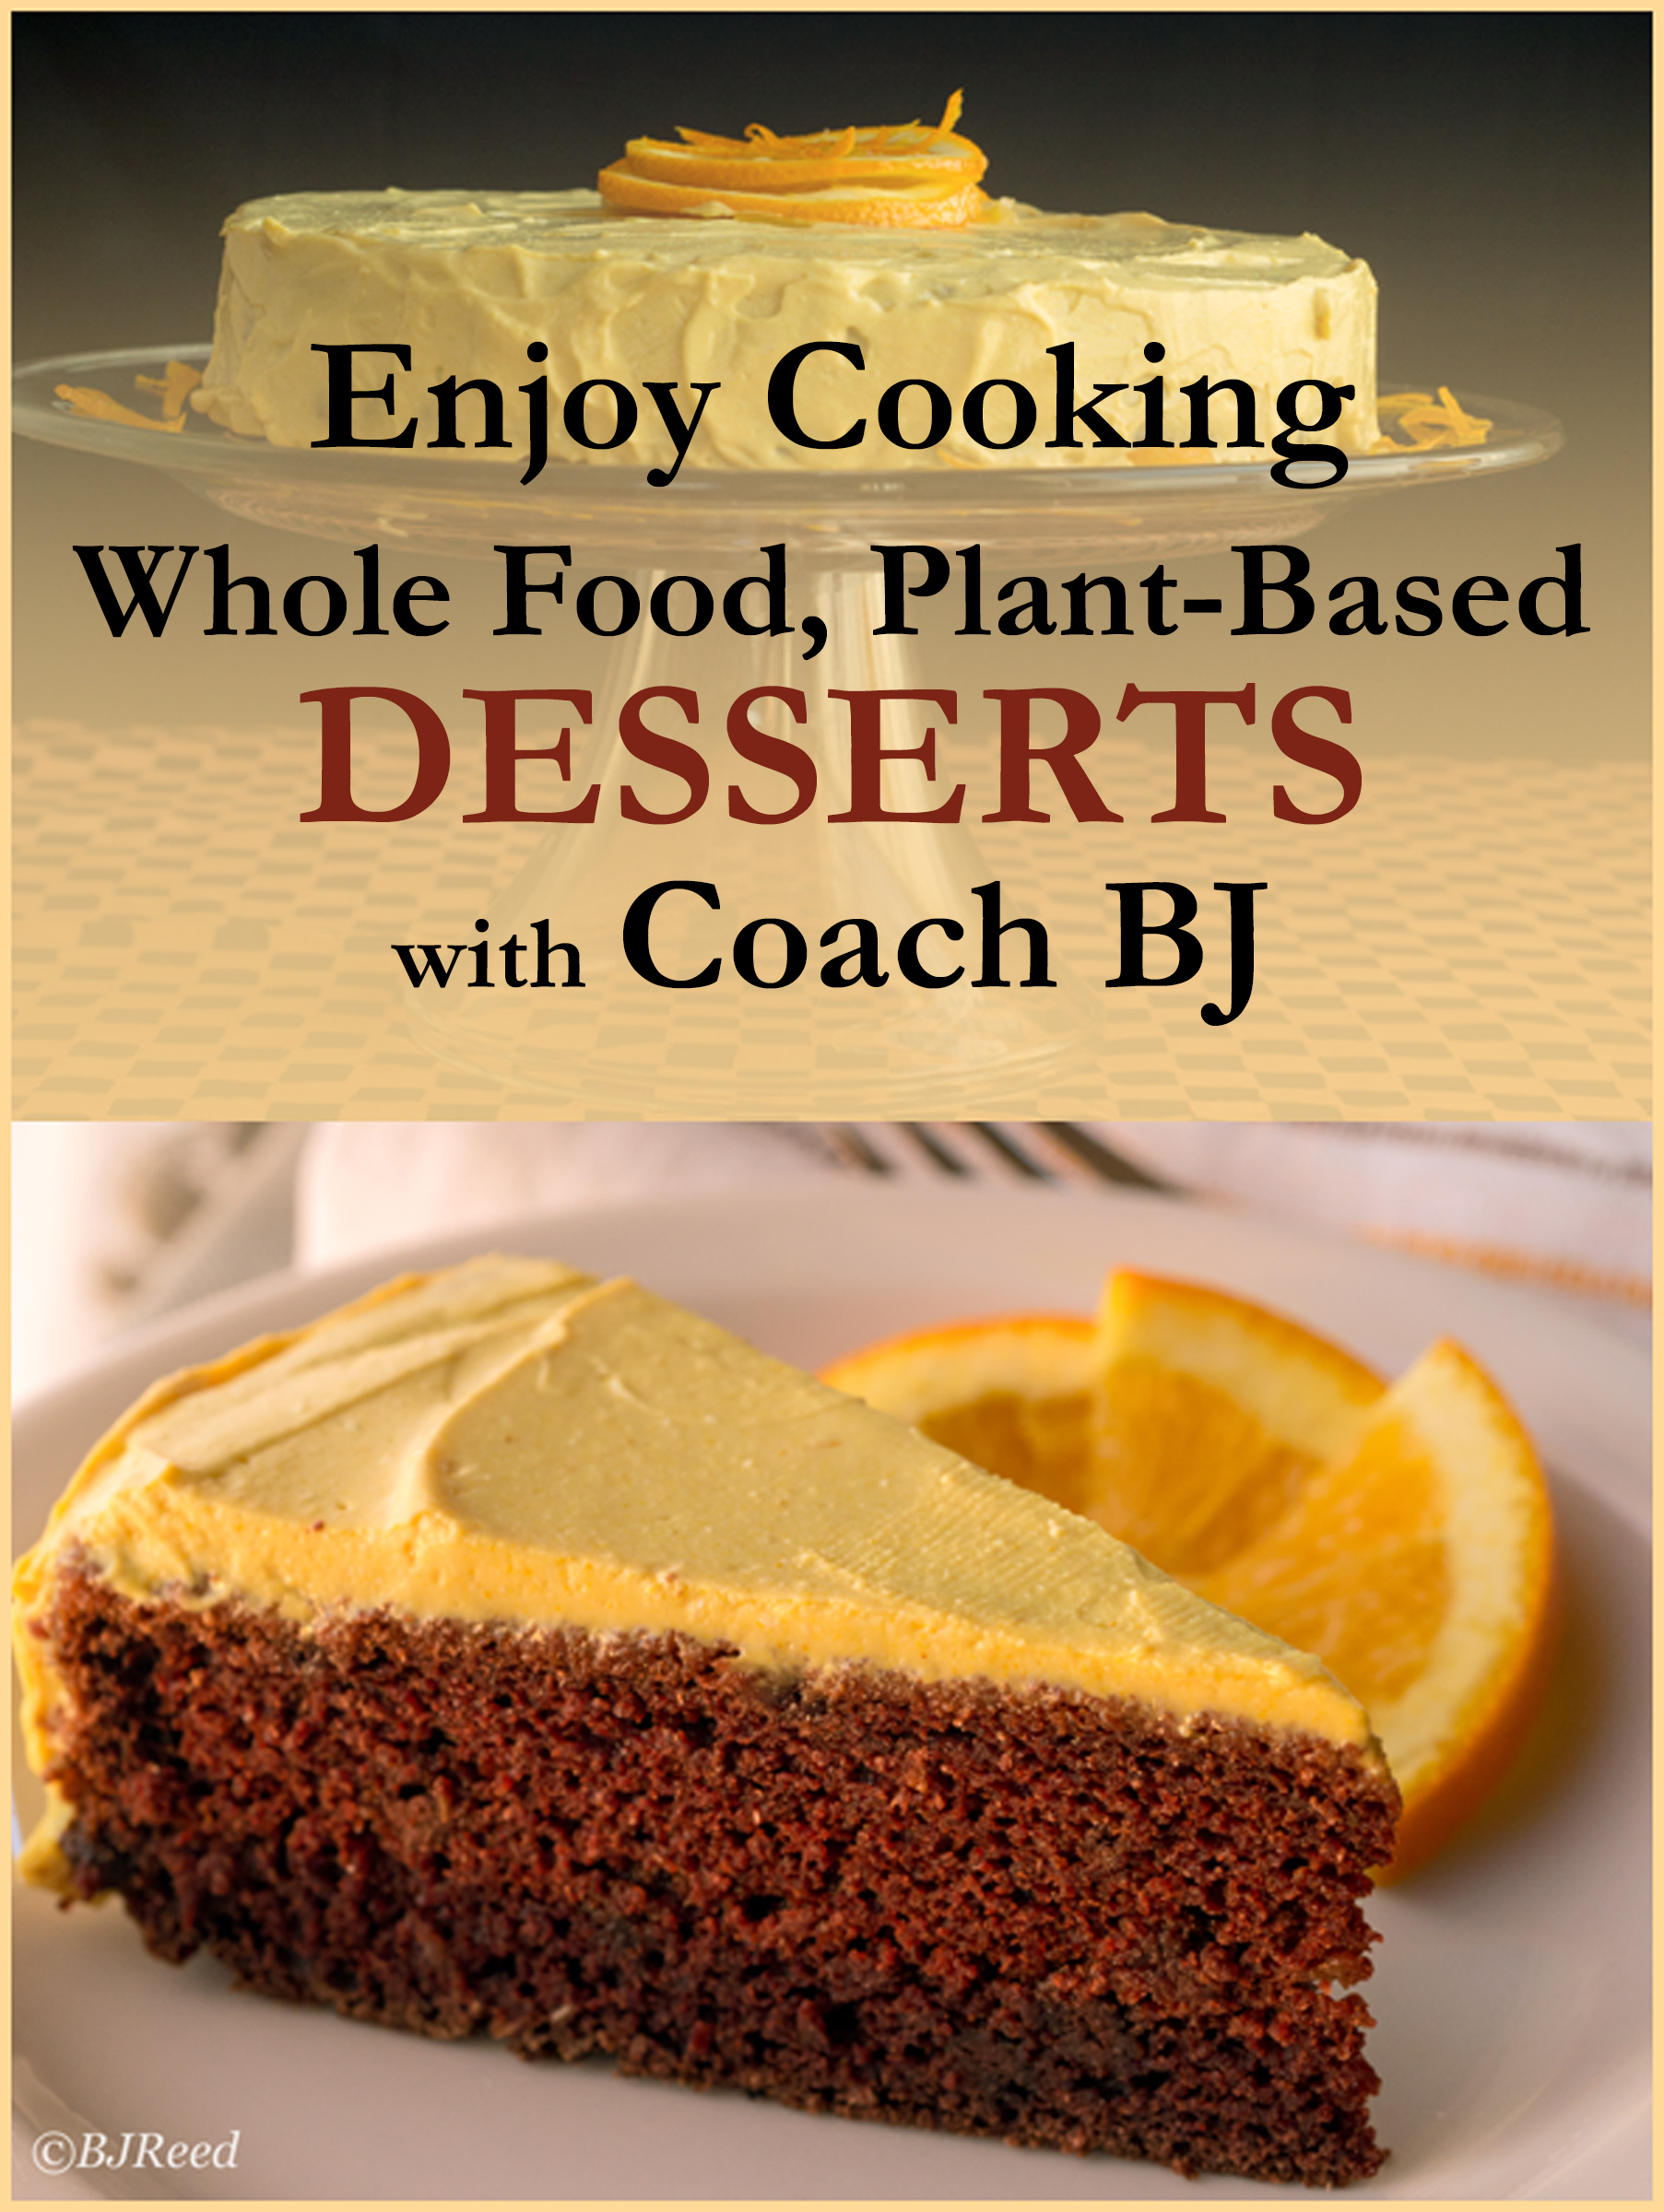 Smashwords Enjoy Cooking Whole Food Plant Based Desserts With Coach Bj A Book By Bj Reed